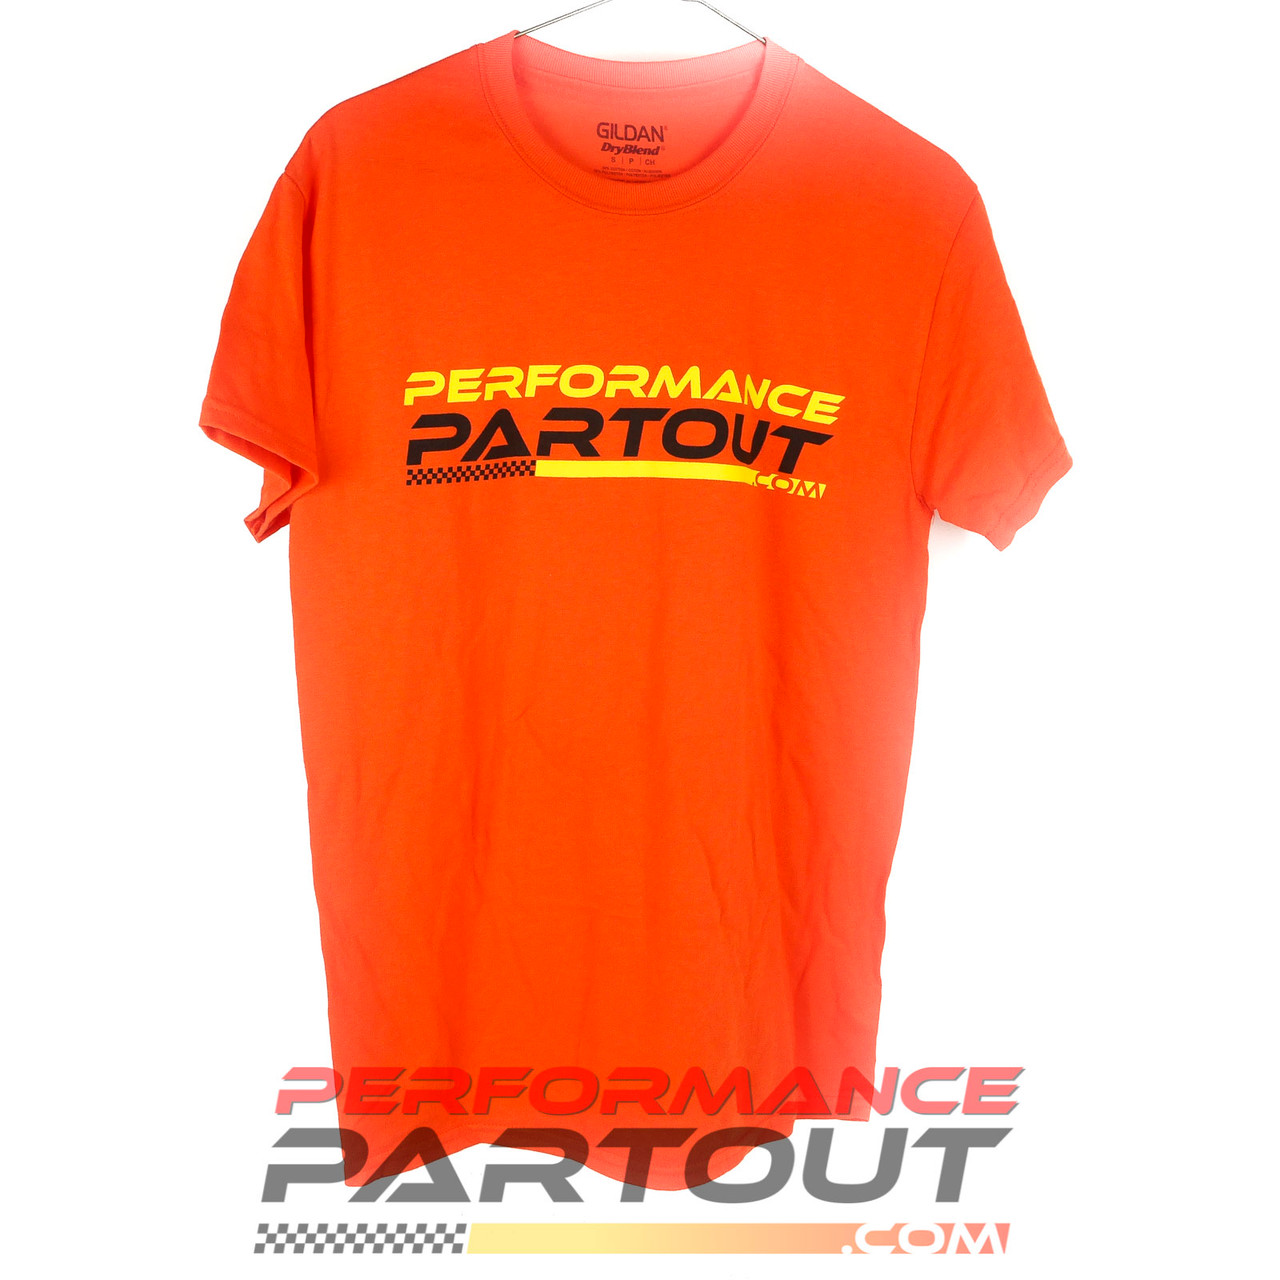 Performance Partout Tshirt Orange